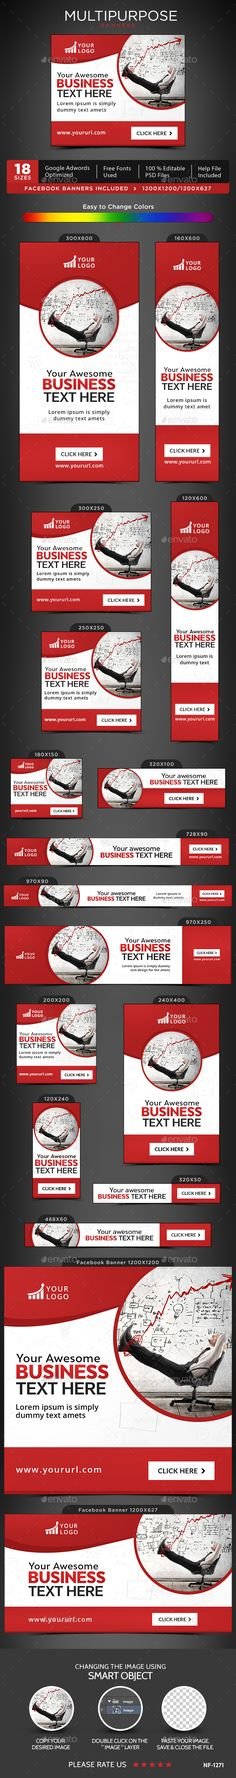 Multipurpose Web Banners Template PSD. Download here: http://graphicriver.net/item/multipurpose-banners/15983226?ref=ksioks